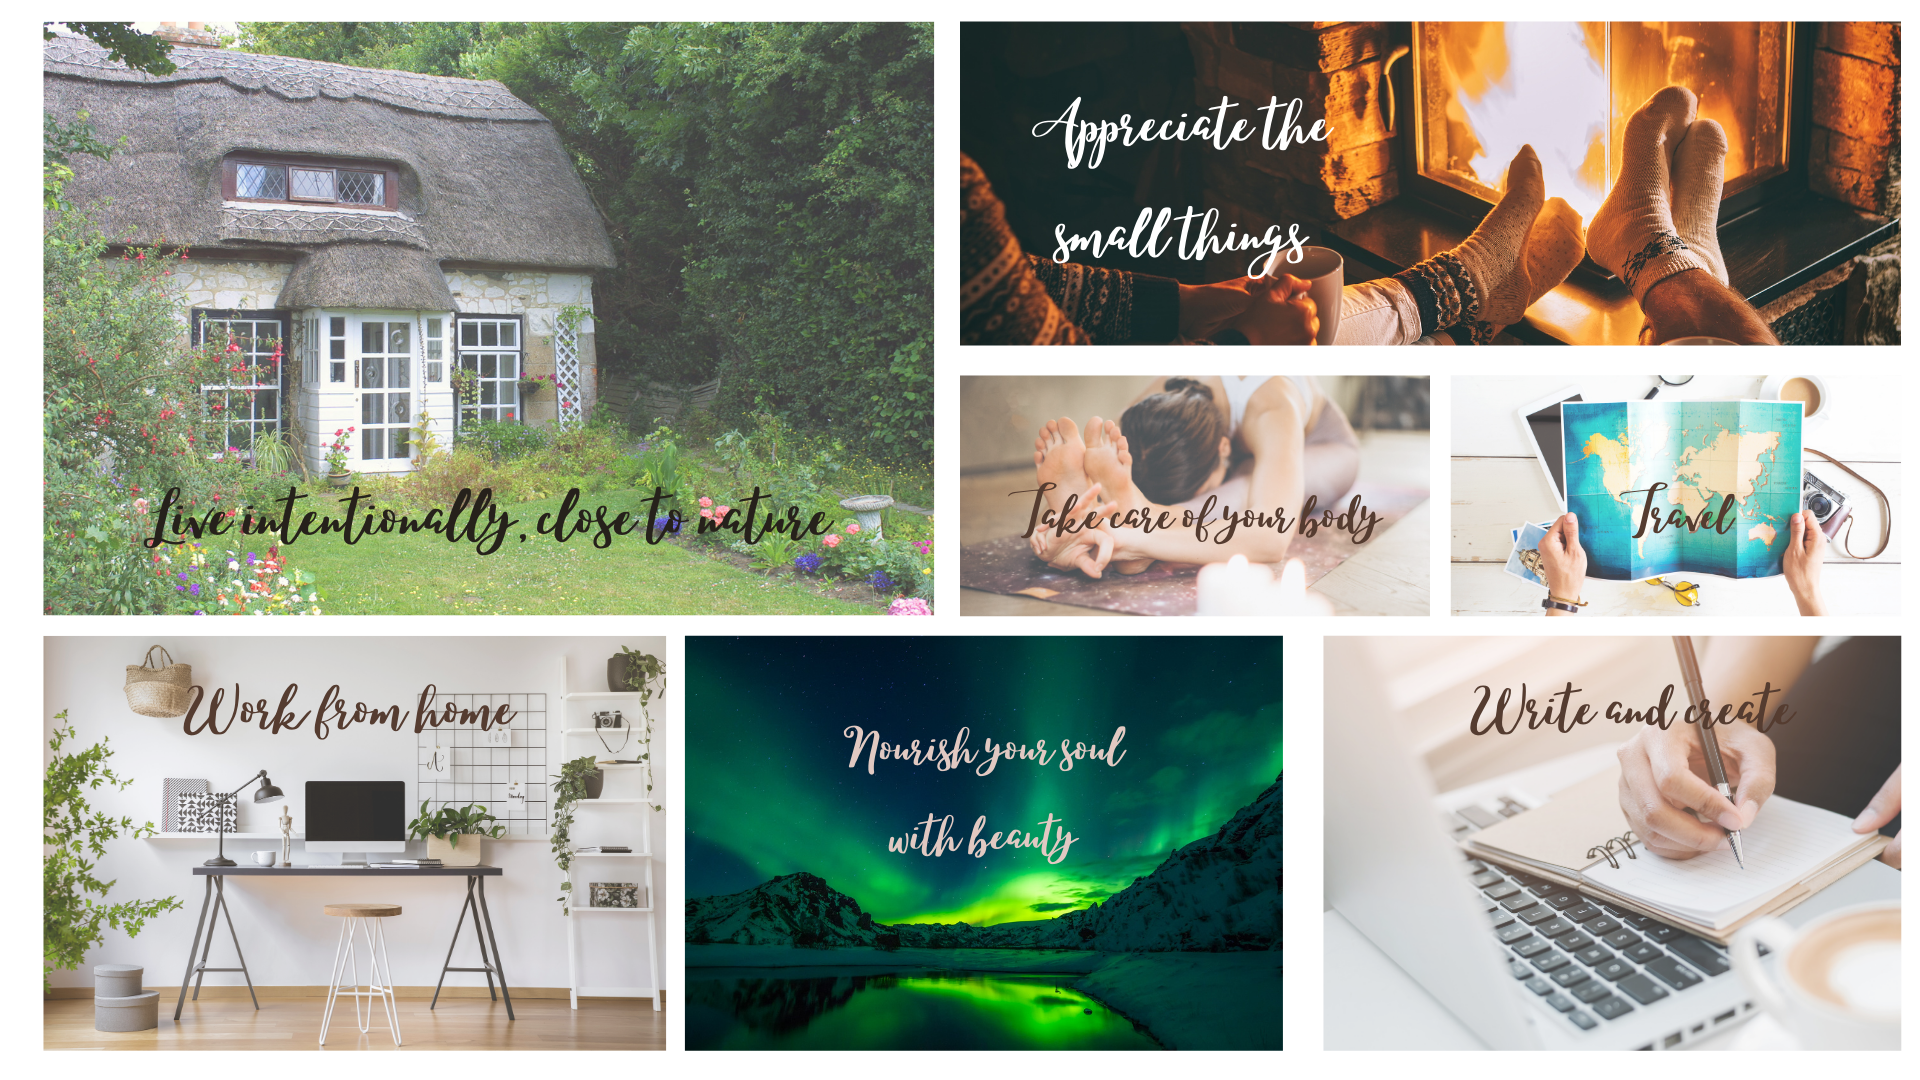 Creating a vision board to realign